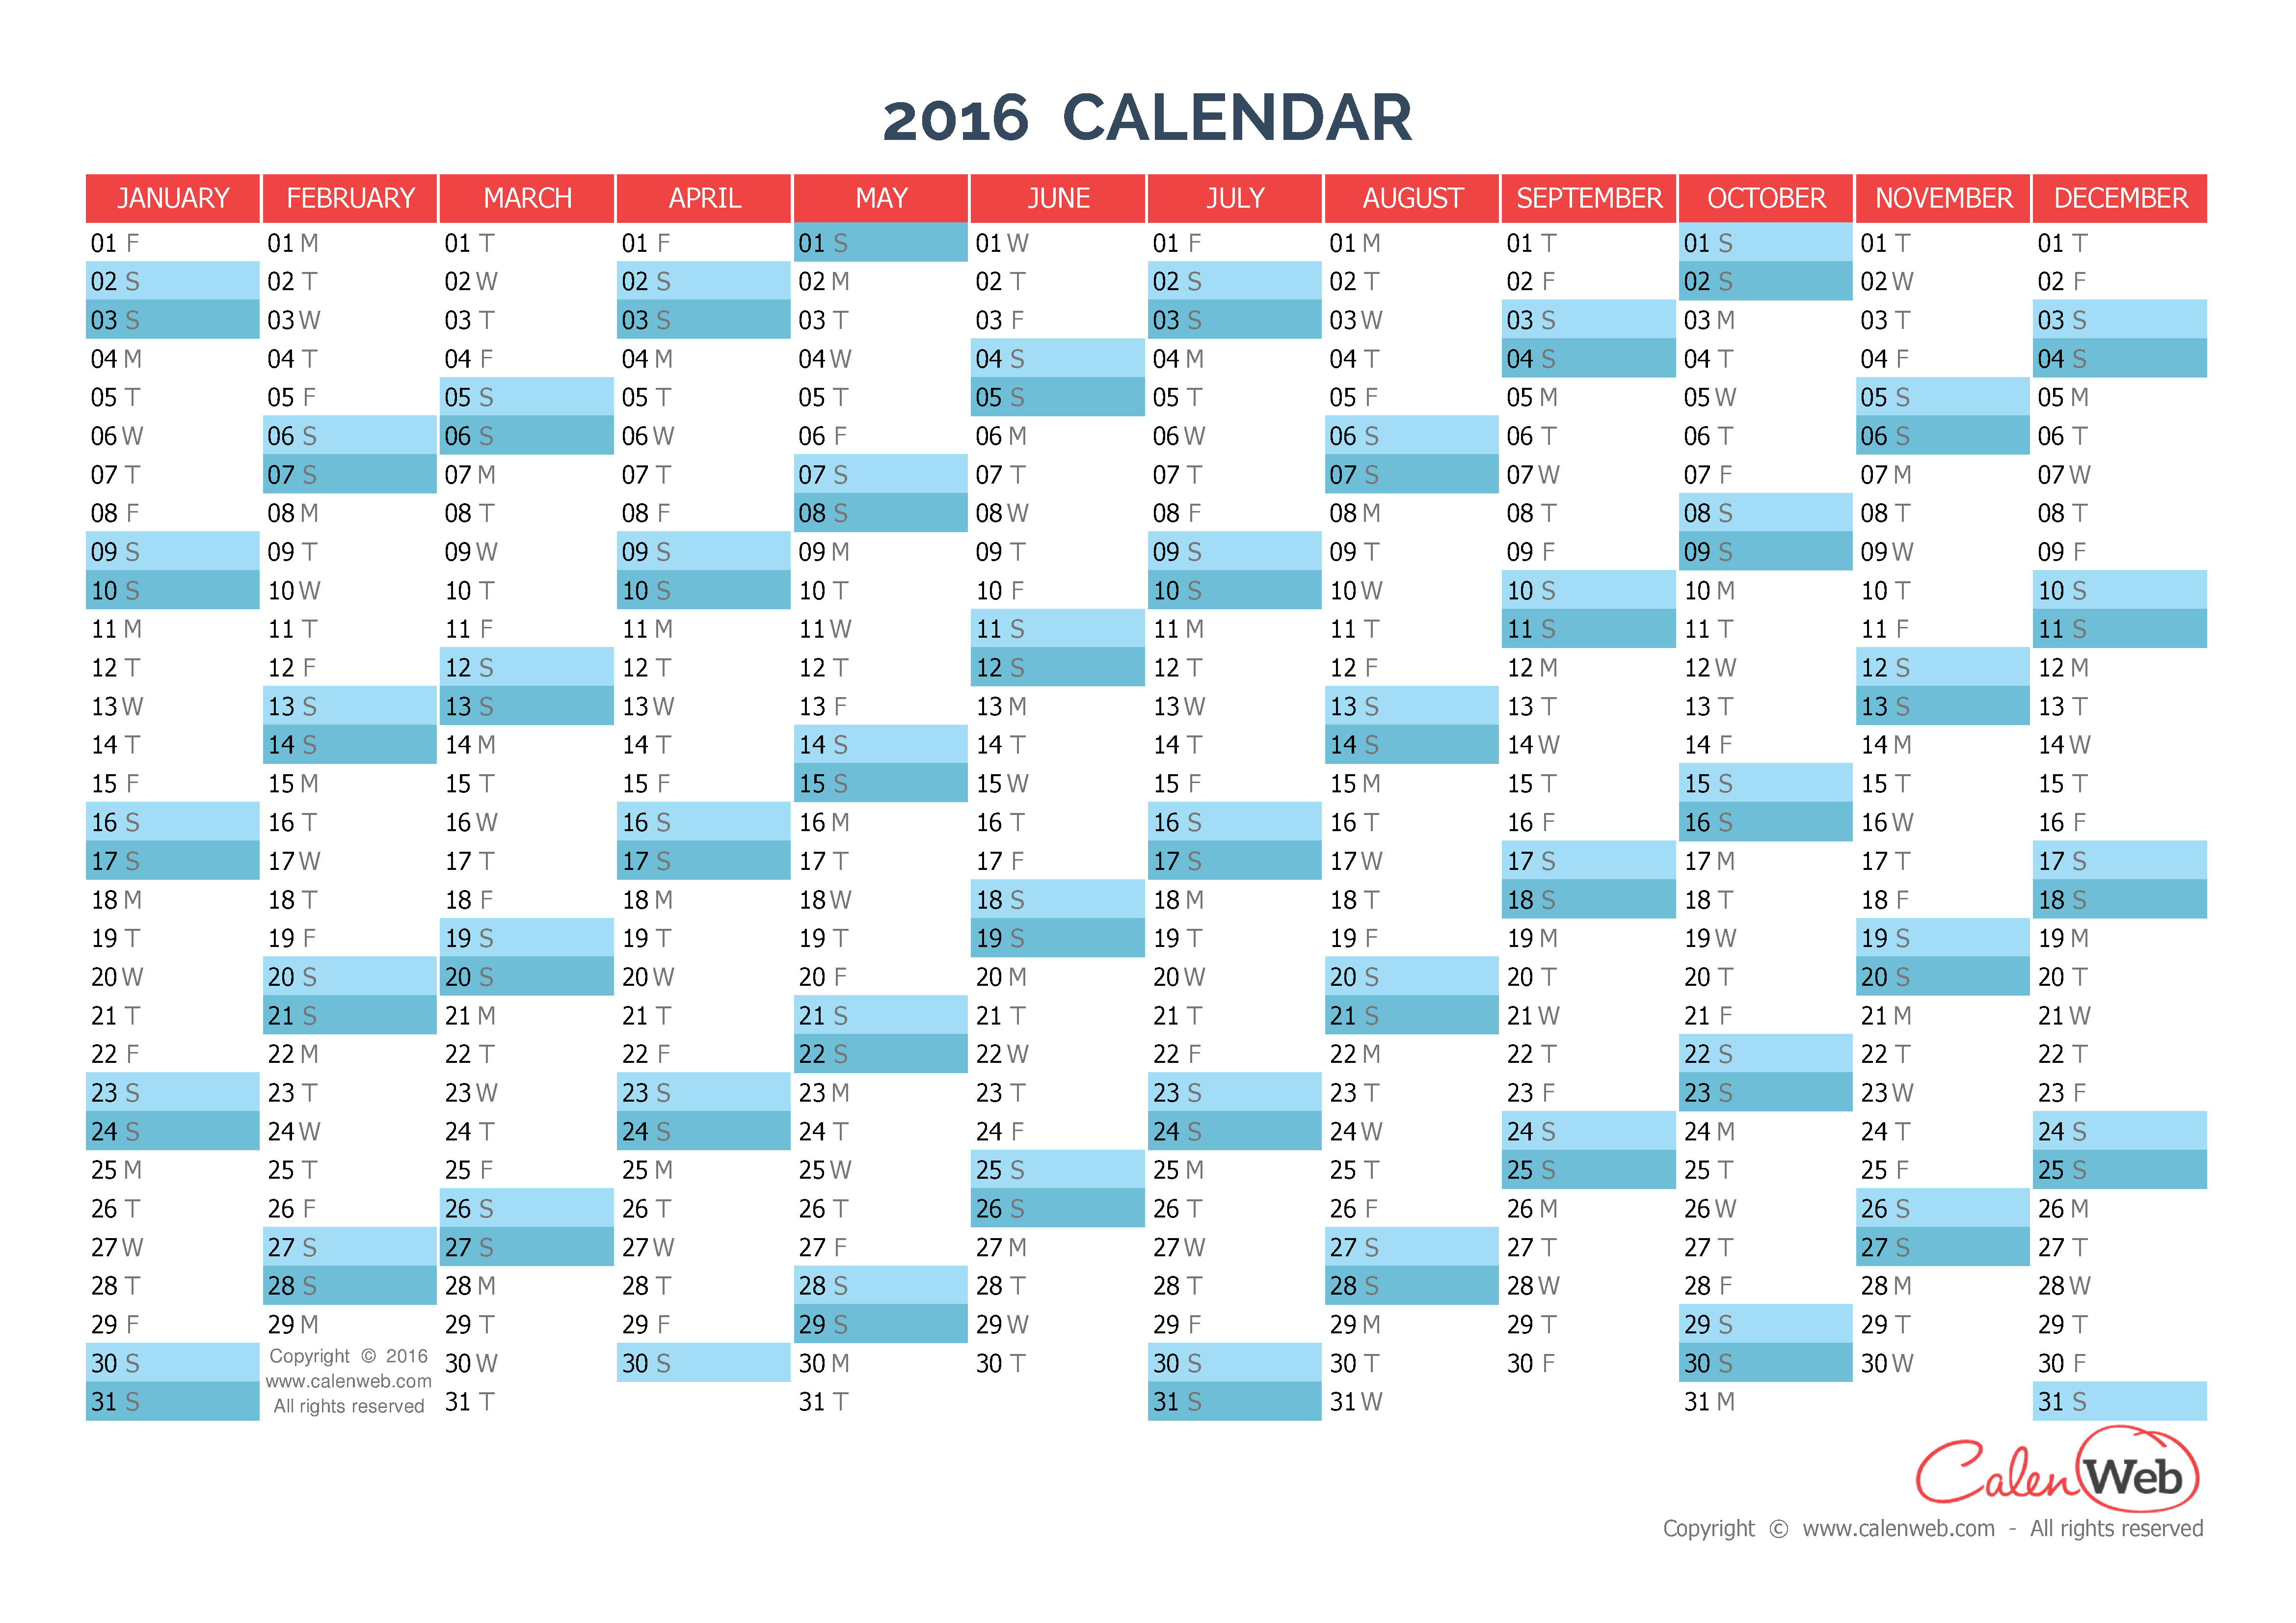 Year Calendar Print Out : Yearly calendar year horizontal planning